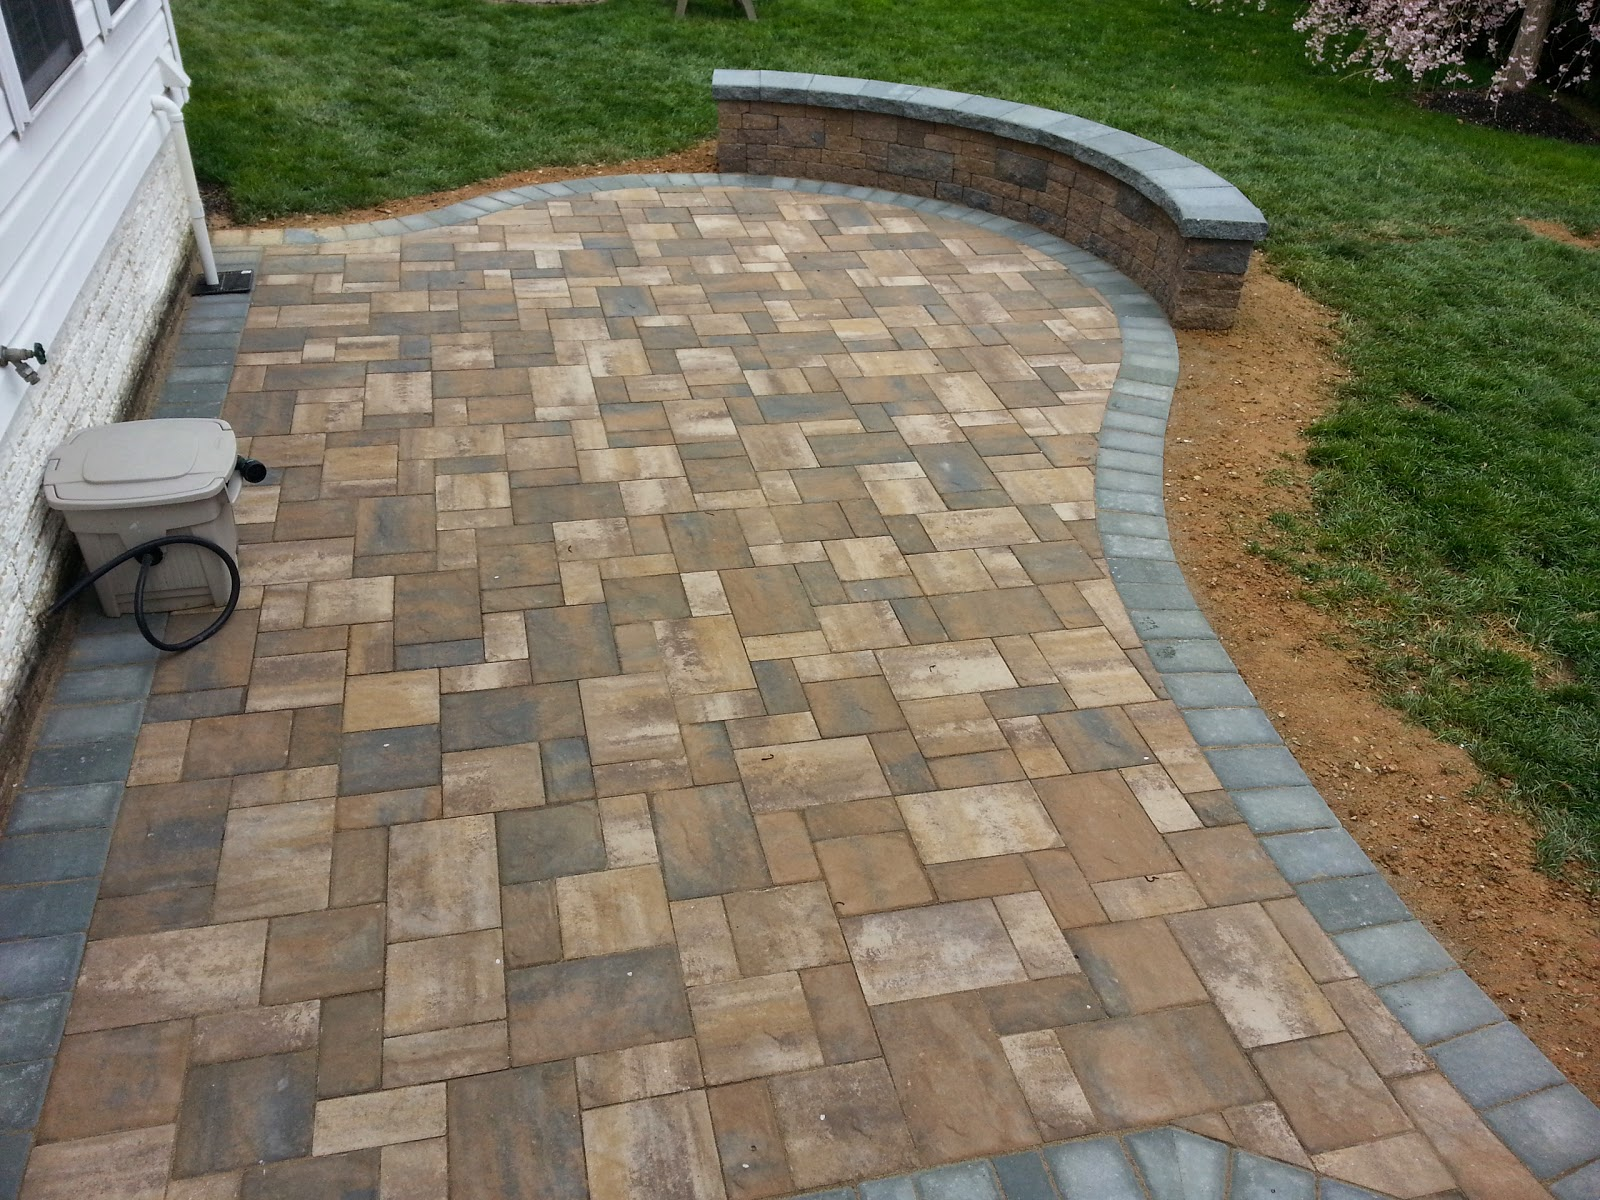 Life Time Pavers Cambridge Maytrx Wall